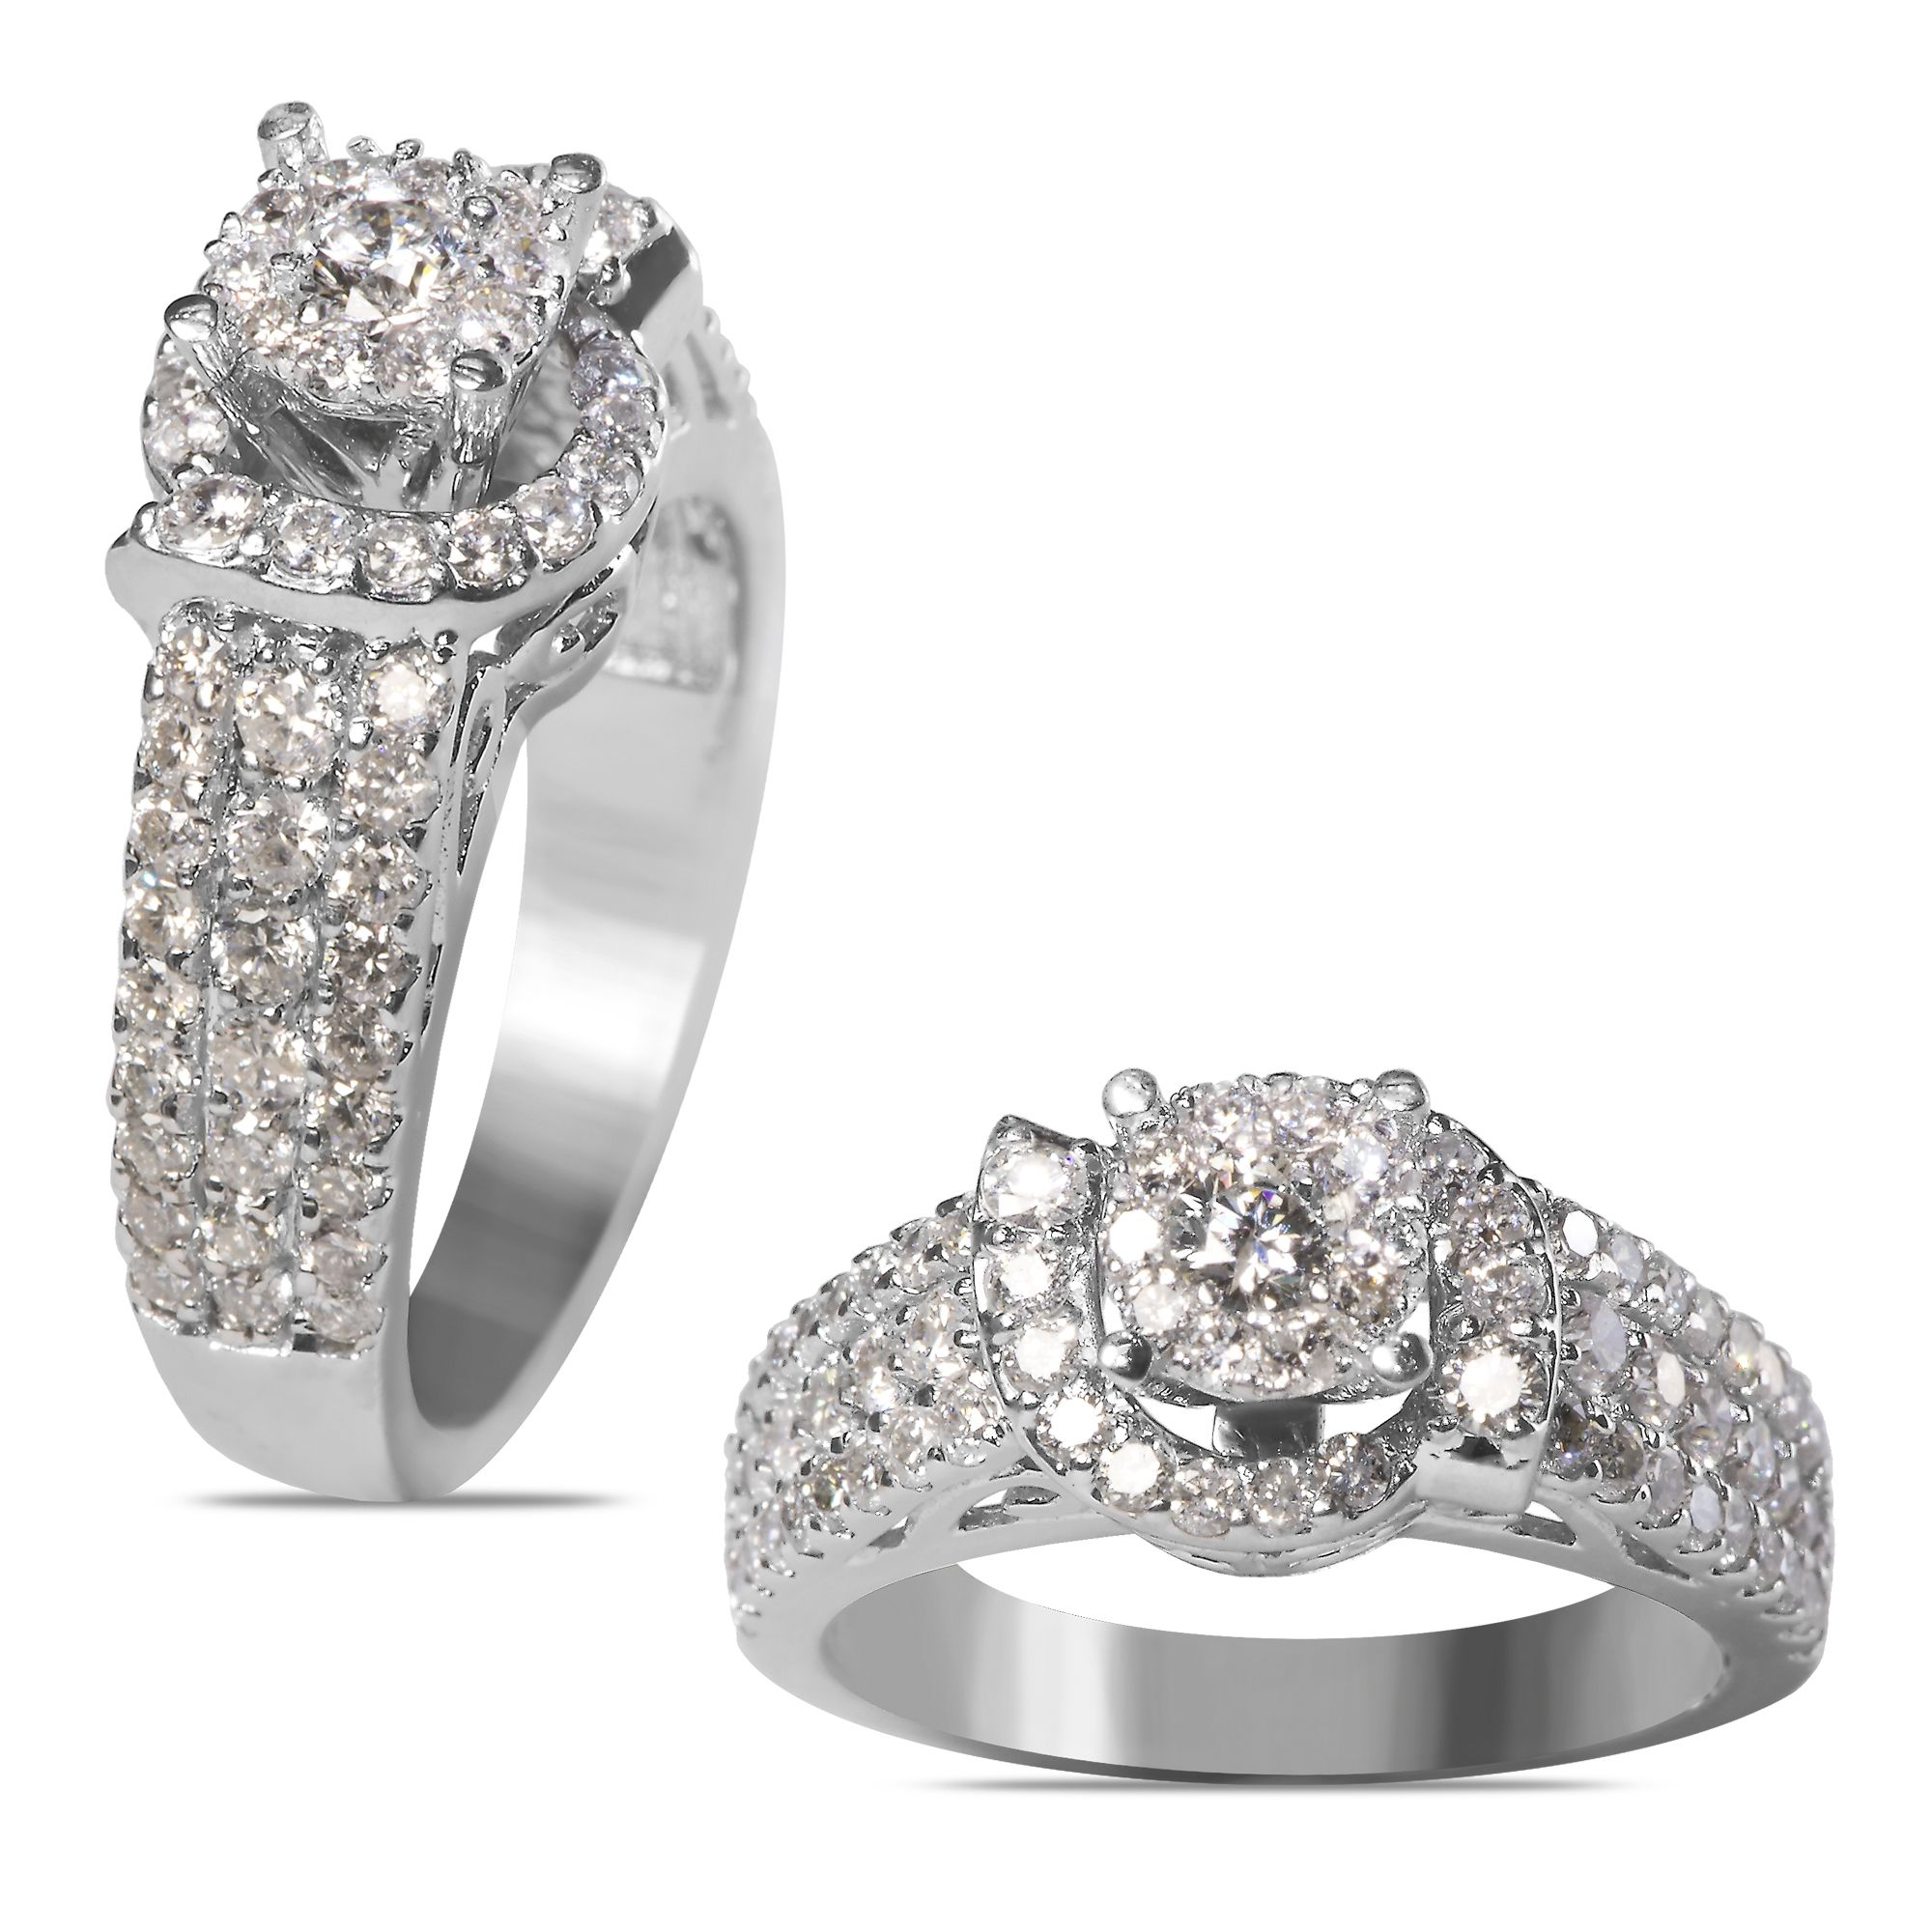 Ebay NissoniJewelry presents La s 1 1 2CT White Diamonds